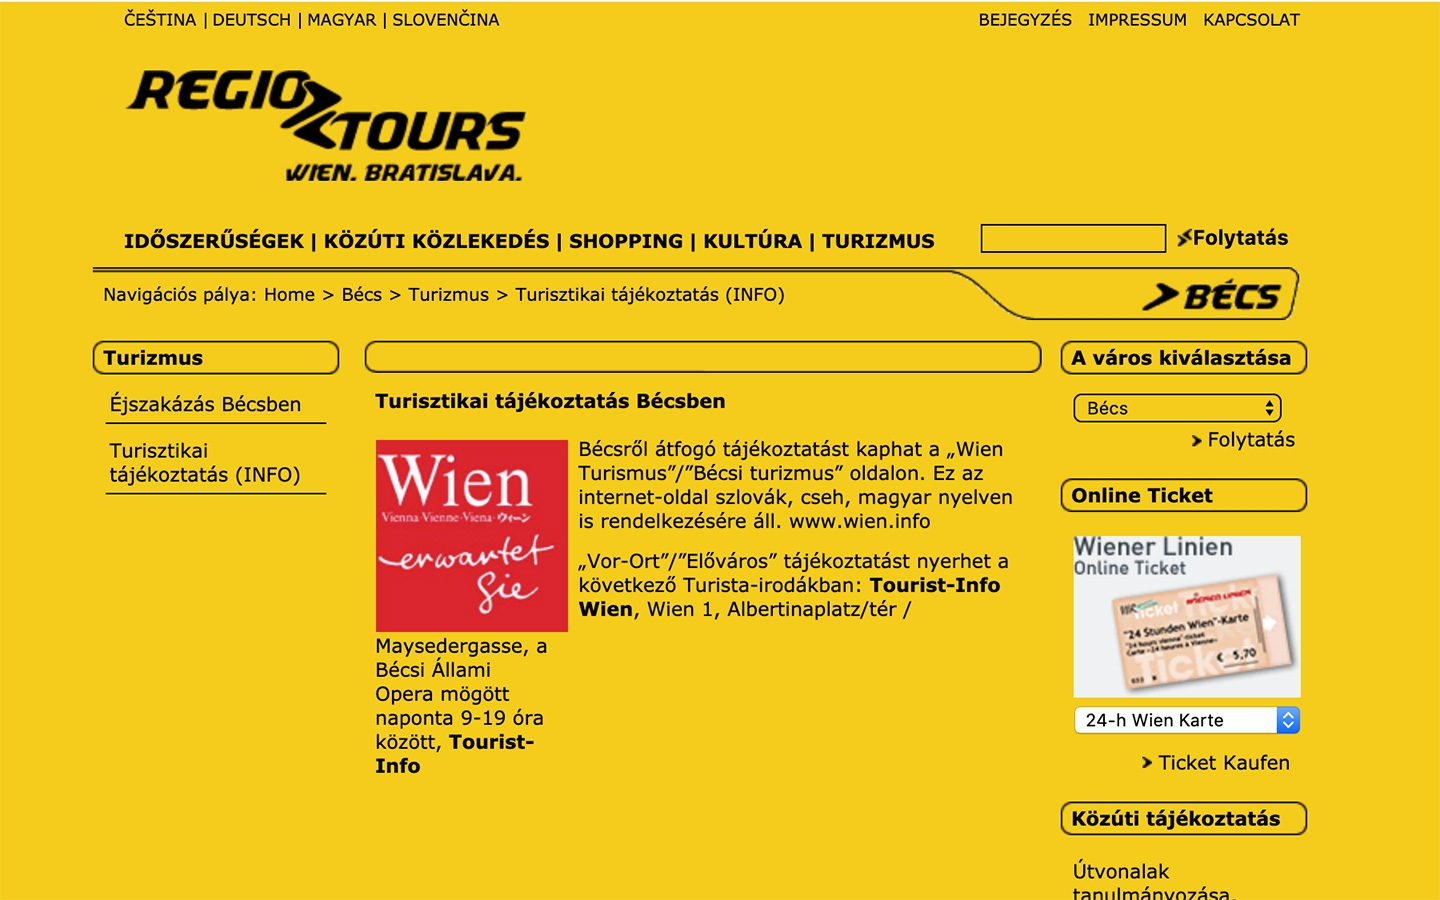 RegioTours | regiotours.net | 2005 (Screen Only 05) © echonet communication